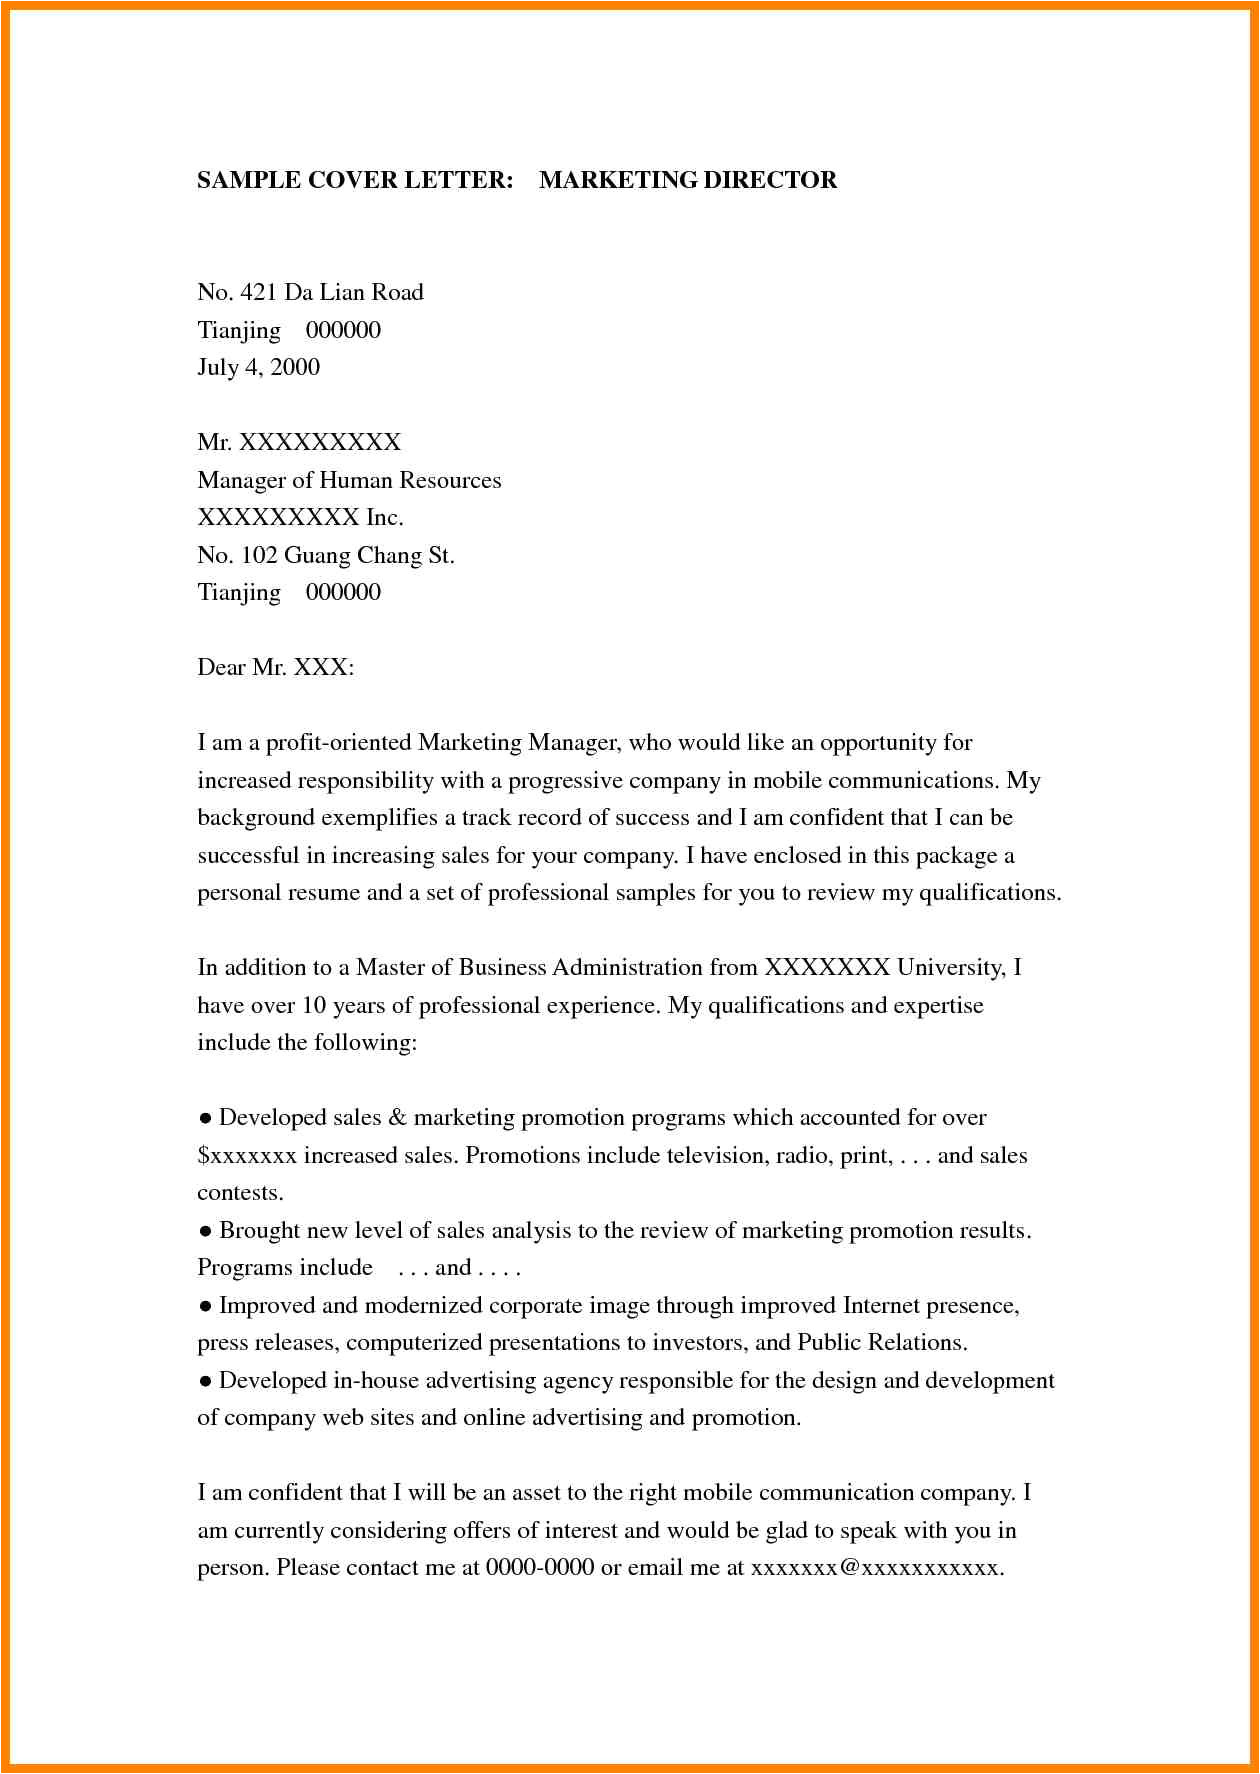 7 creative cover letter for advertising agency